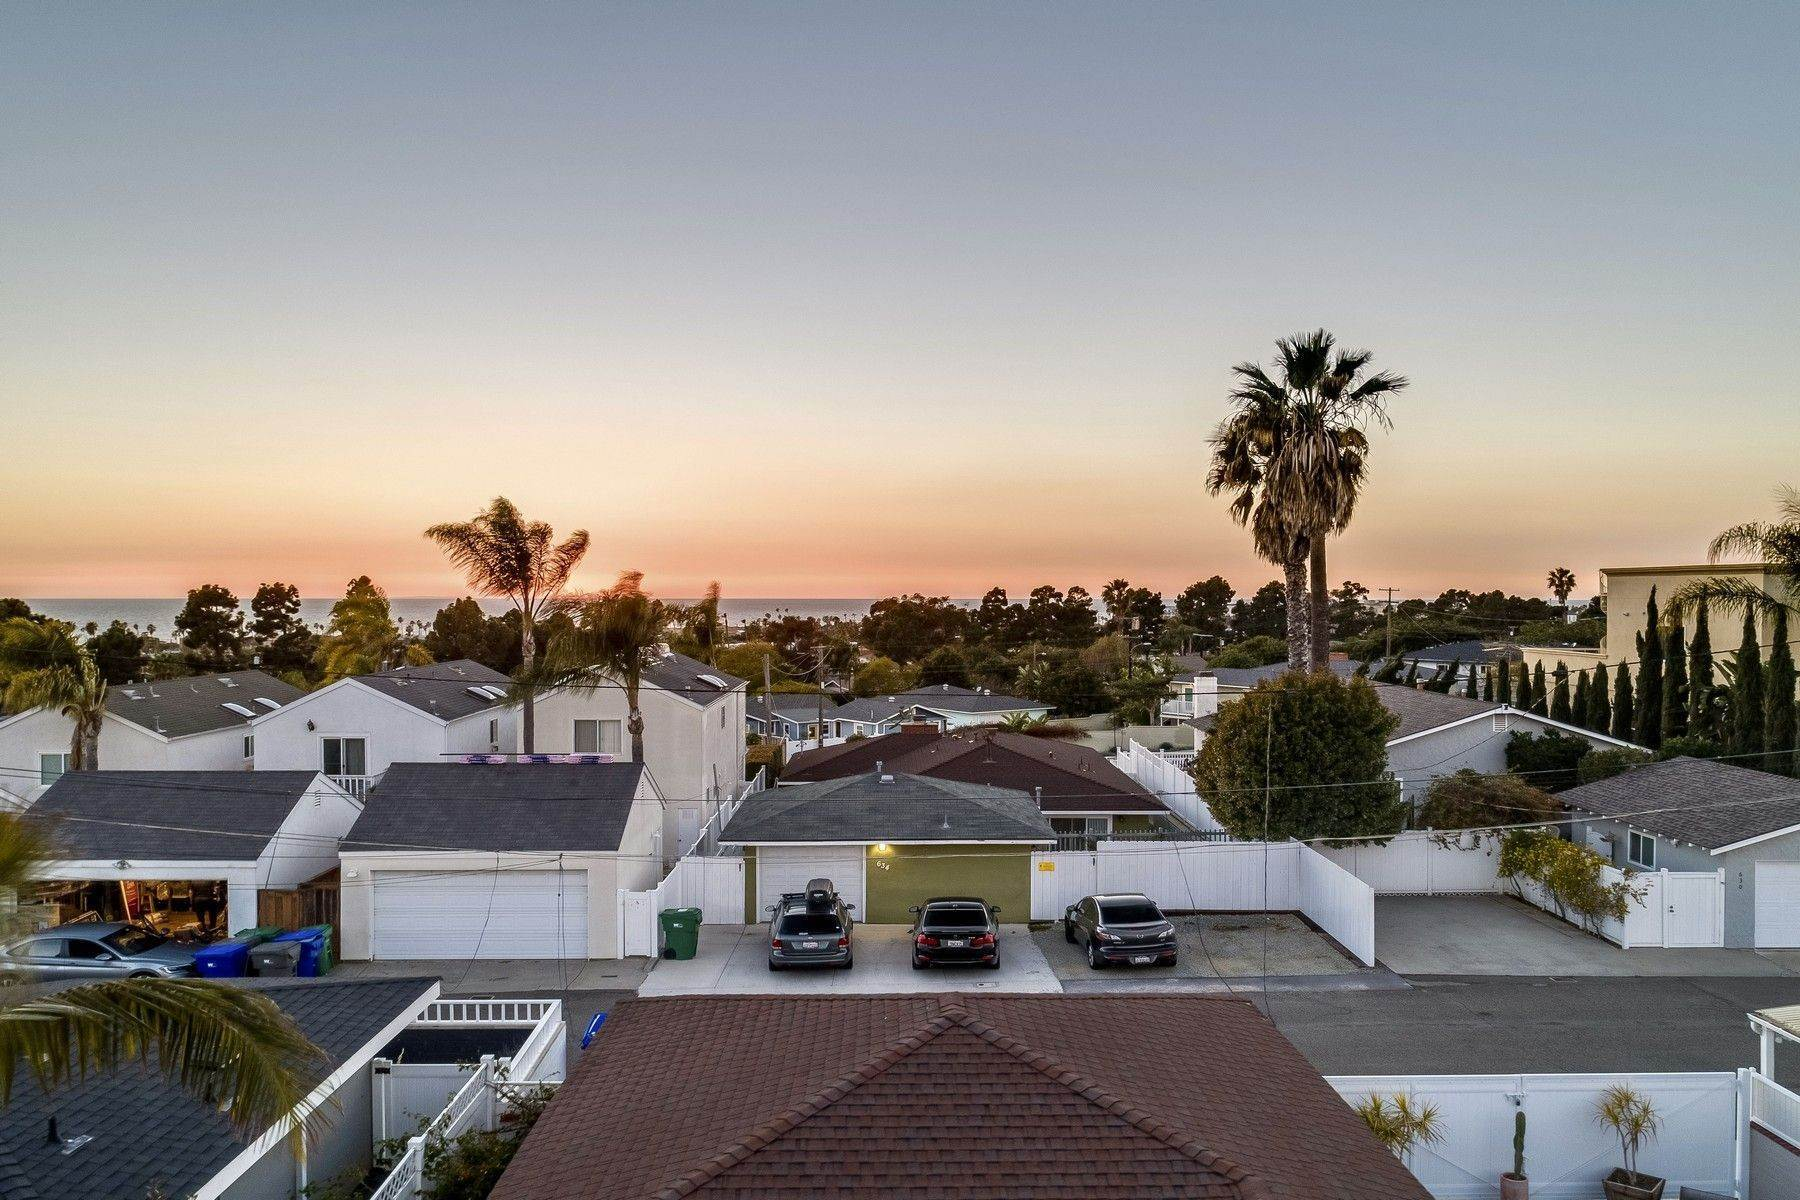 Single Family Homes for Sale at 633 Garfield Street, Oceanside, CA 92054 633 Garfield Street Oceanside, California 92054 United States